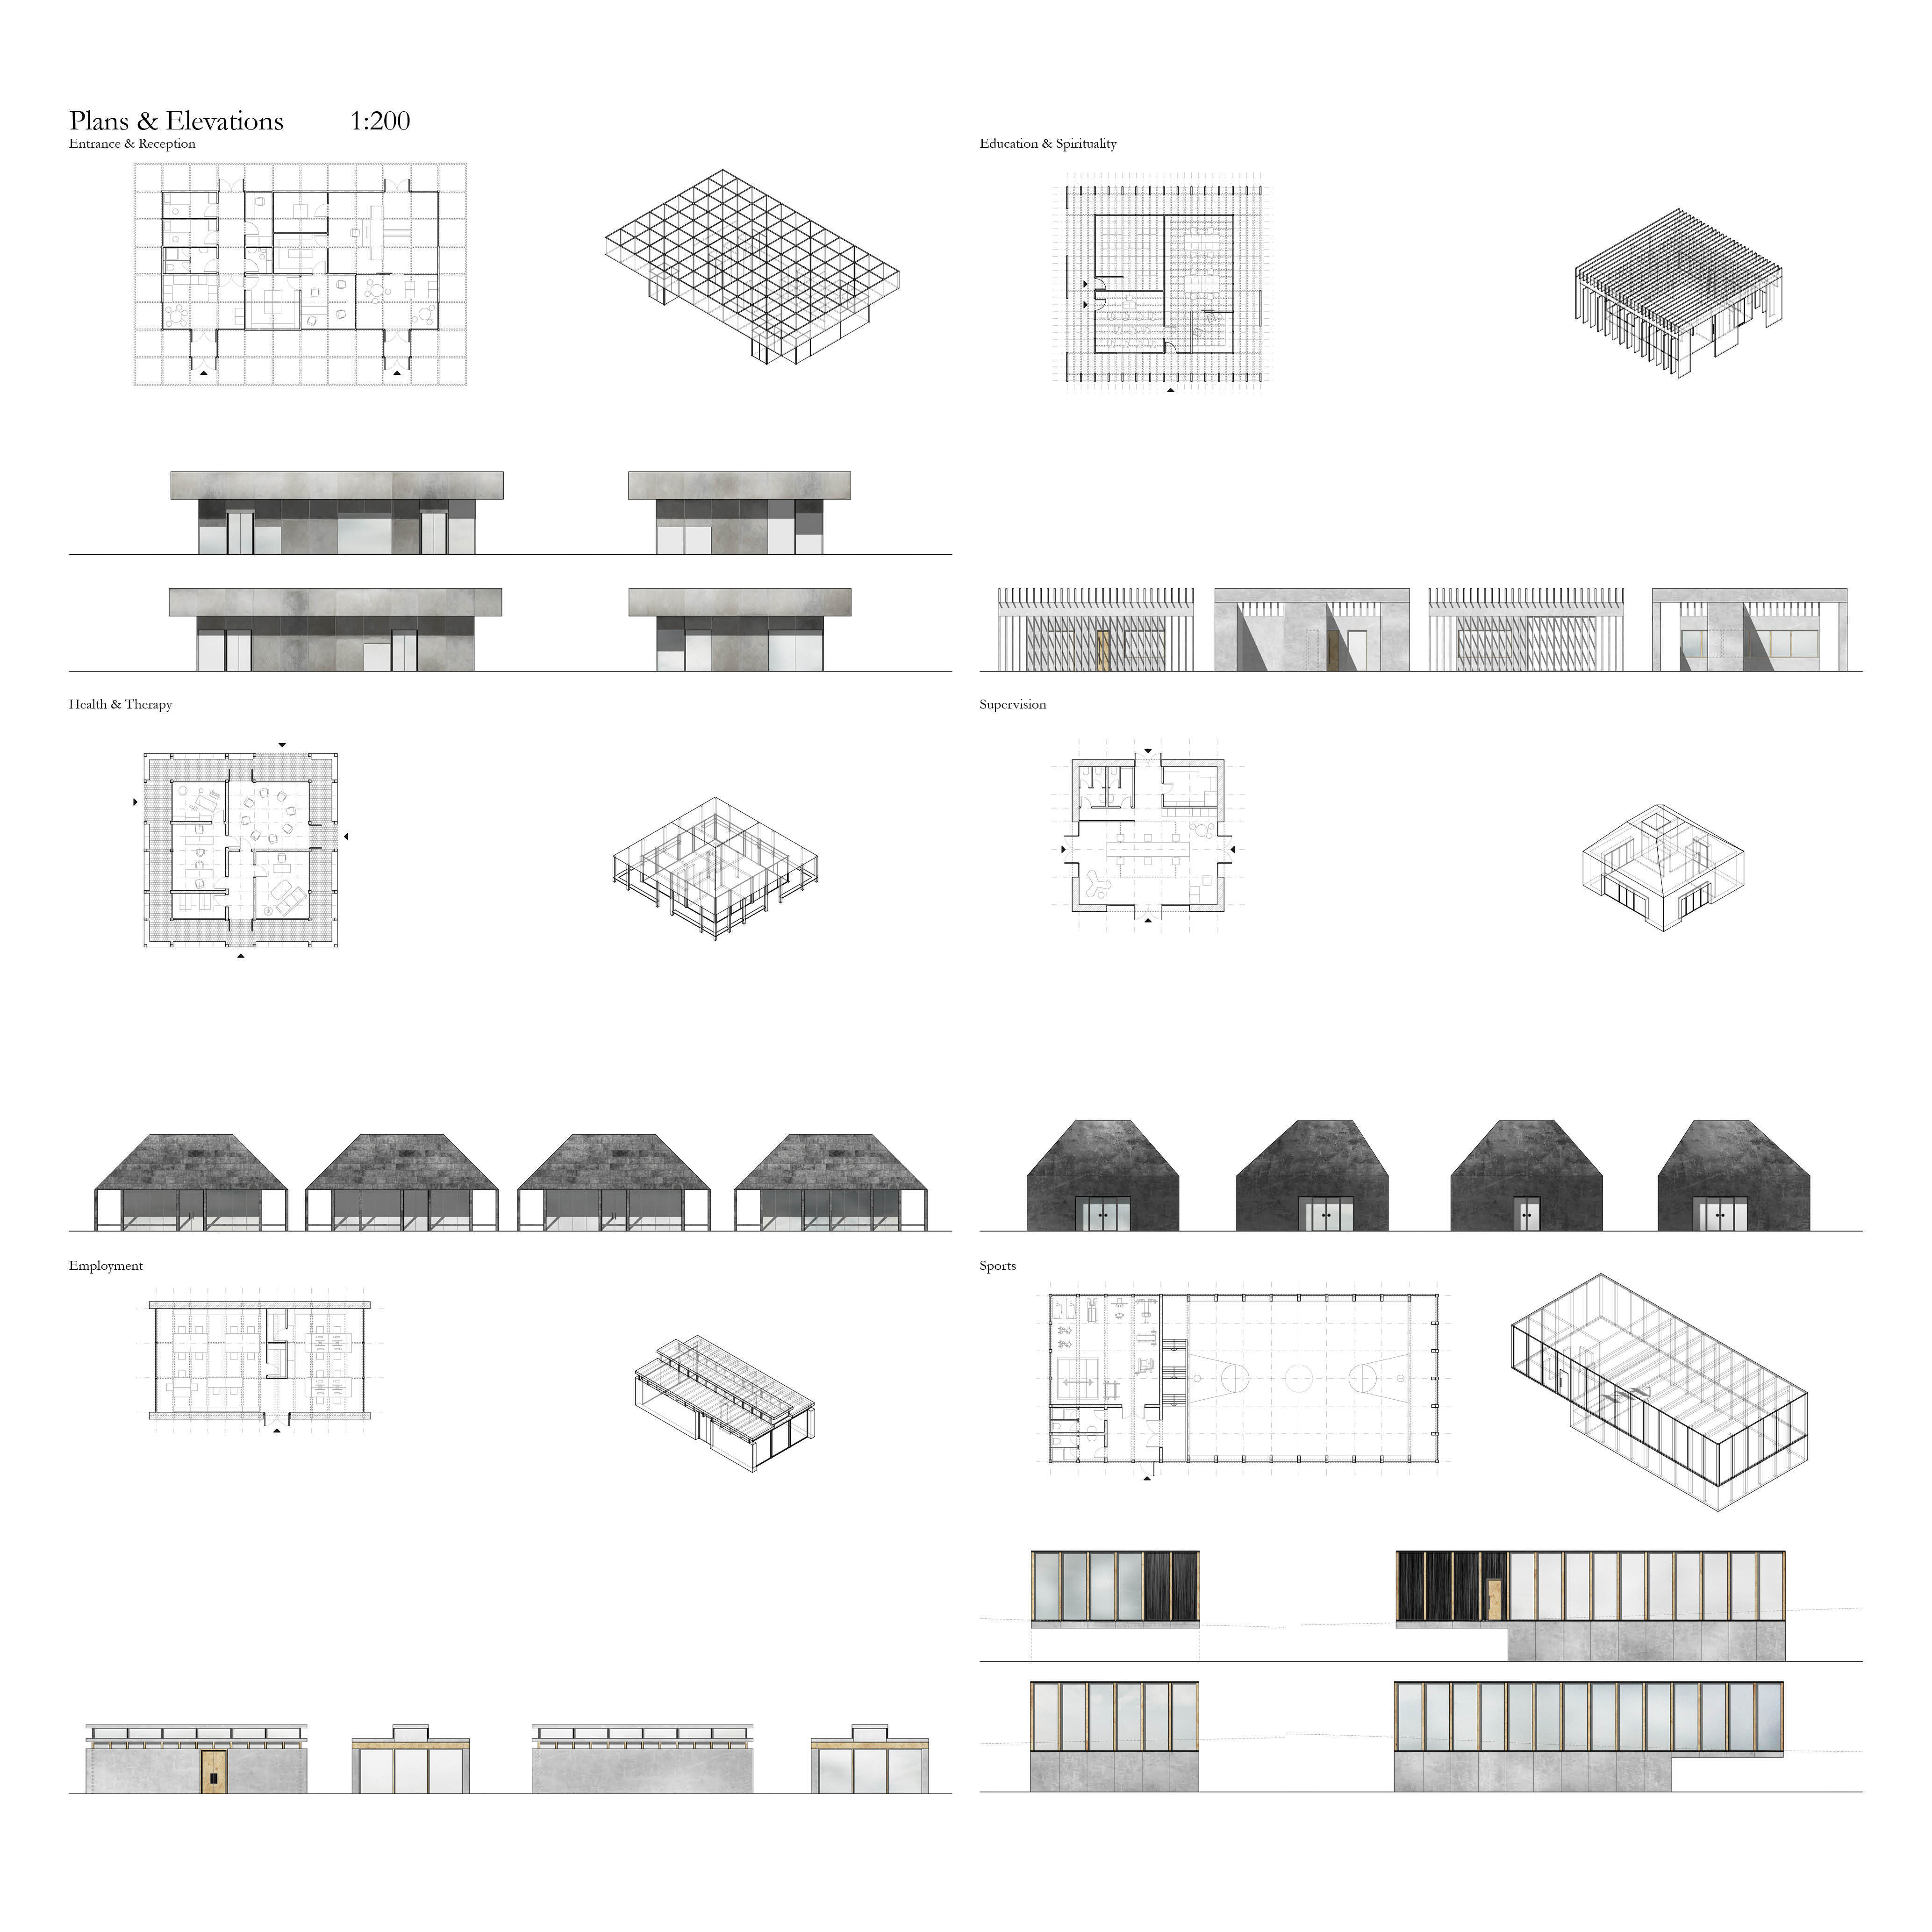 Plans & Elevations